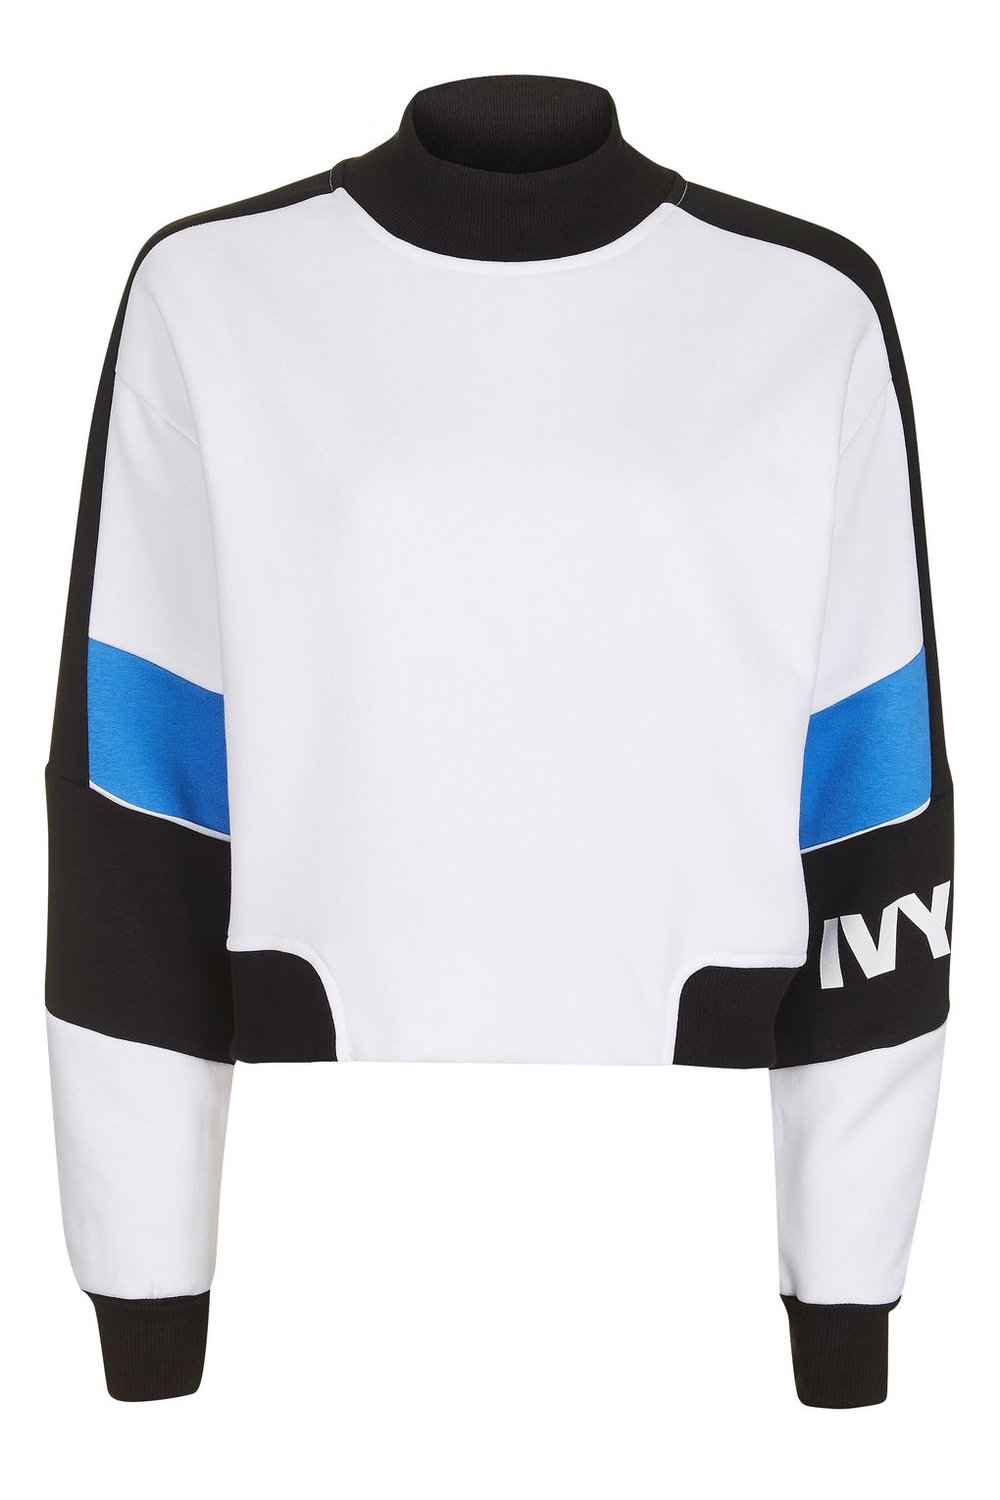 Colour Block Crop Sweat by Ivy Park